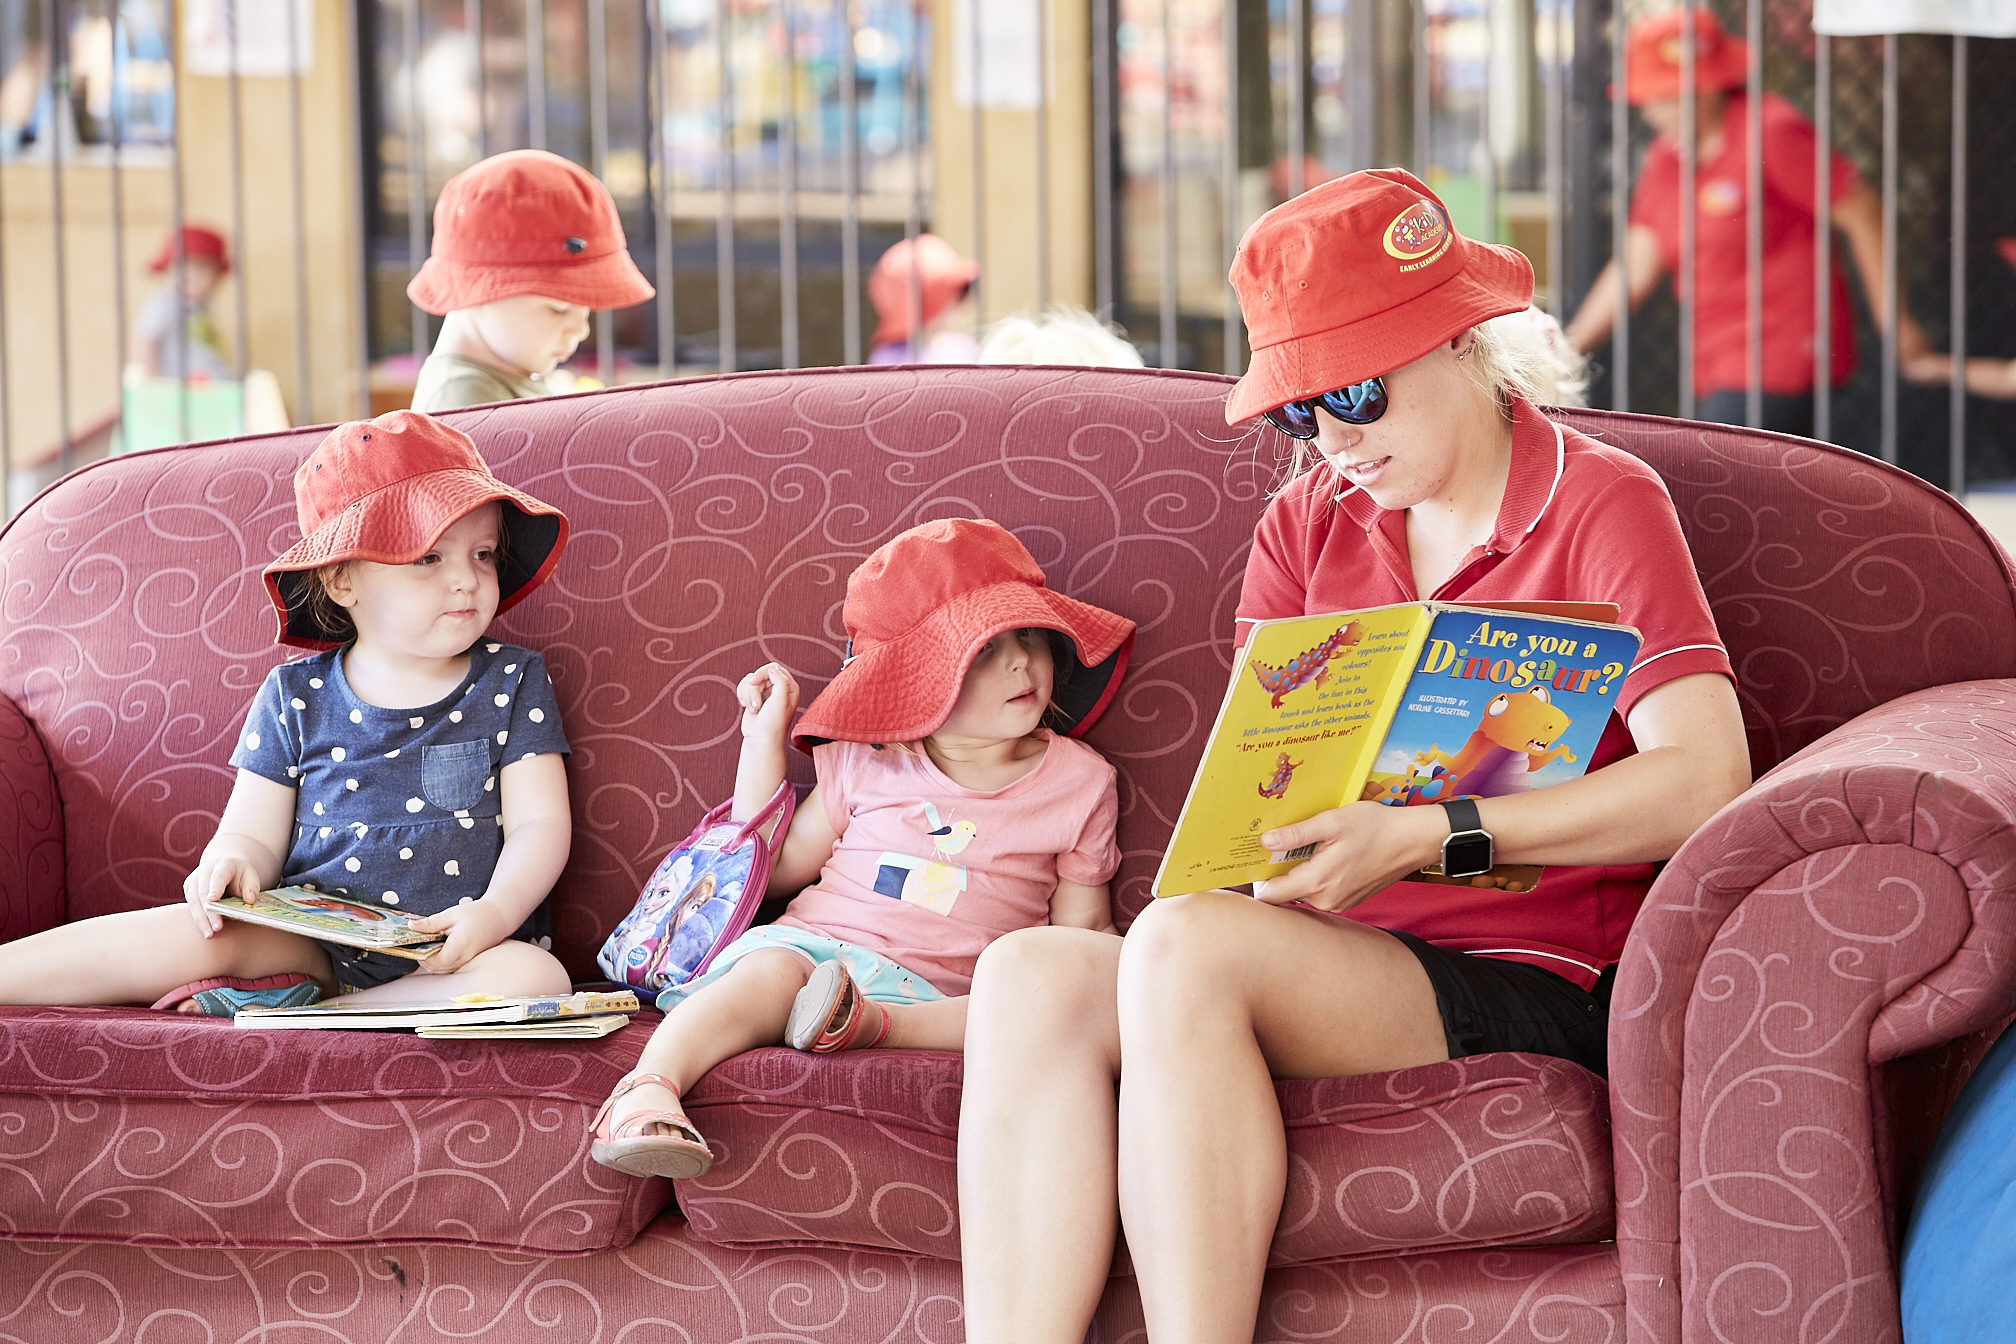 Child care educator reading to children on red couch